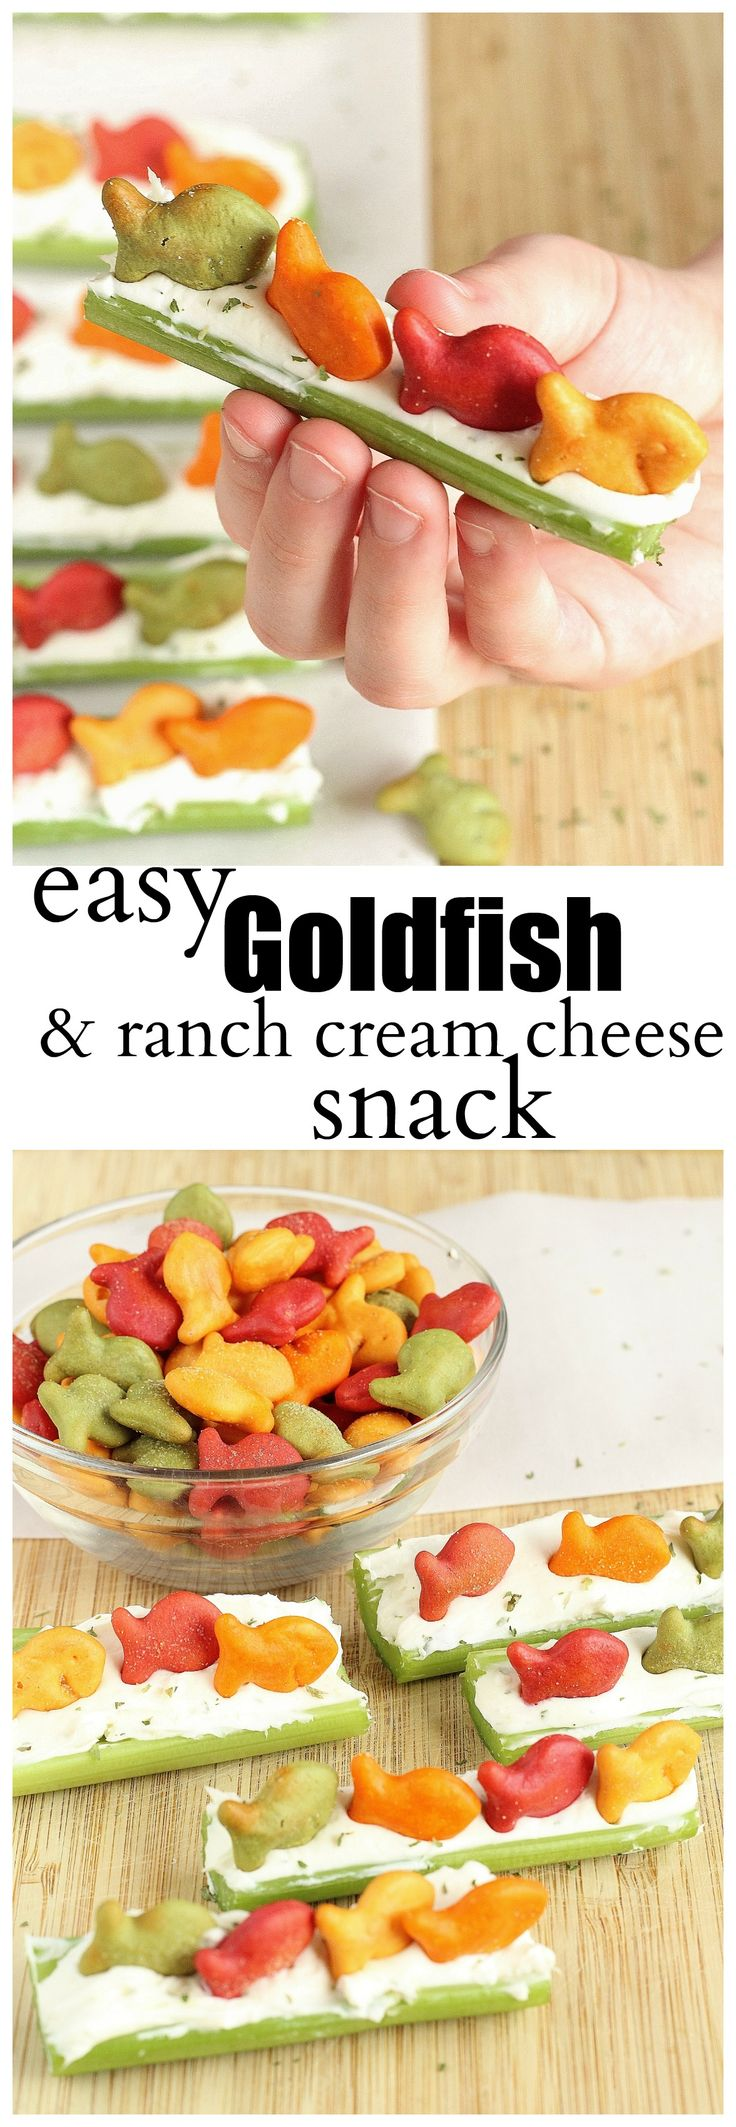 Celery topped with ranch cream cheese and Goldfish® crackers.